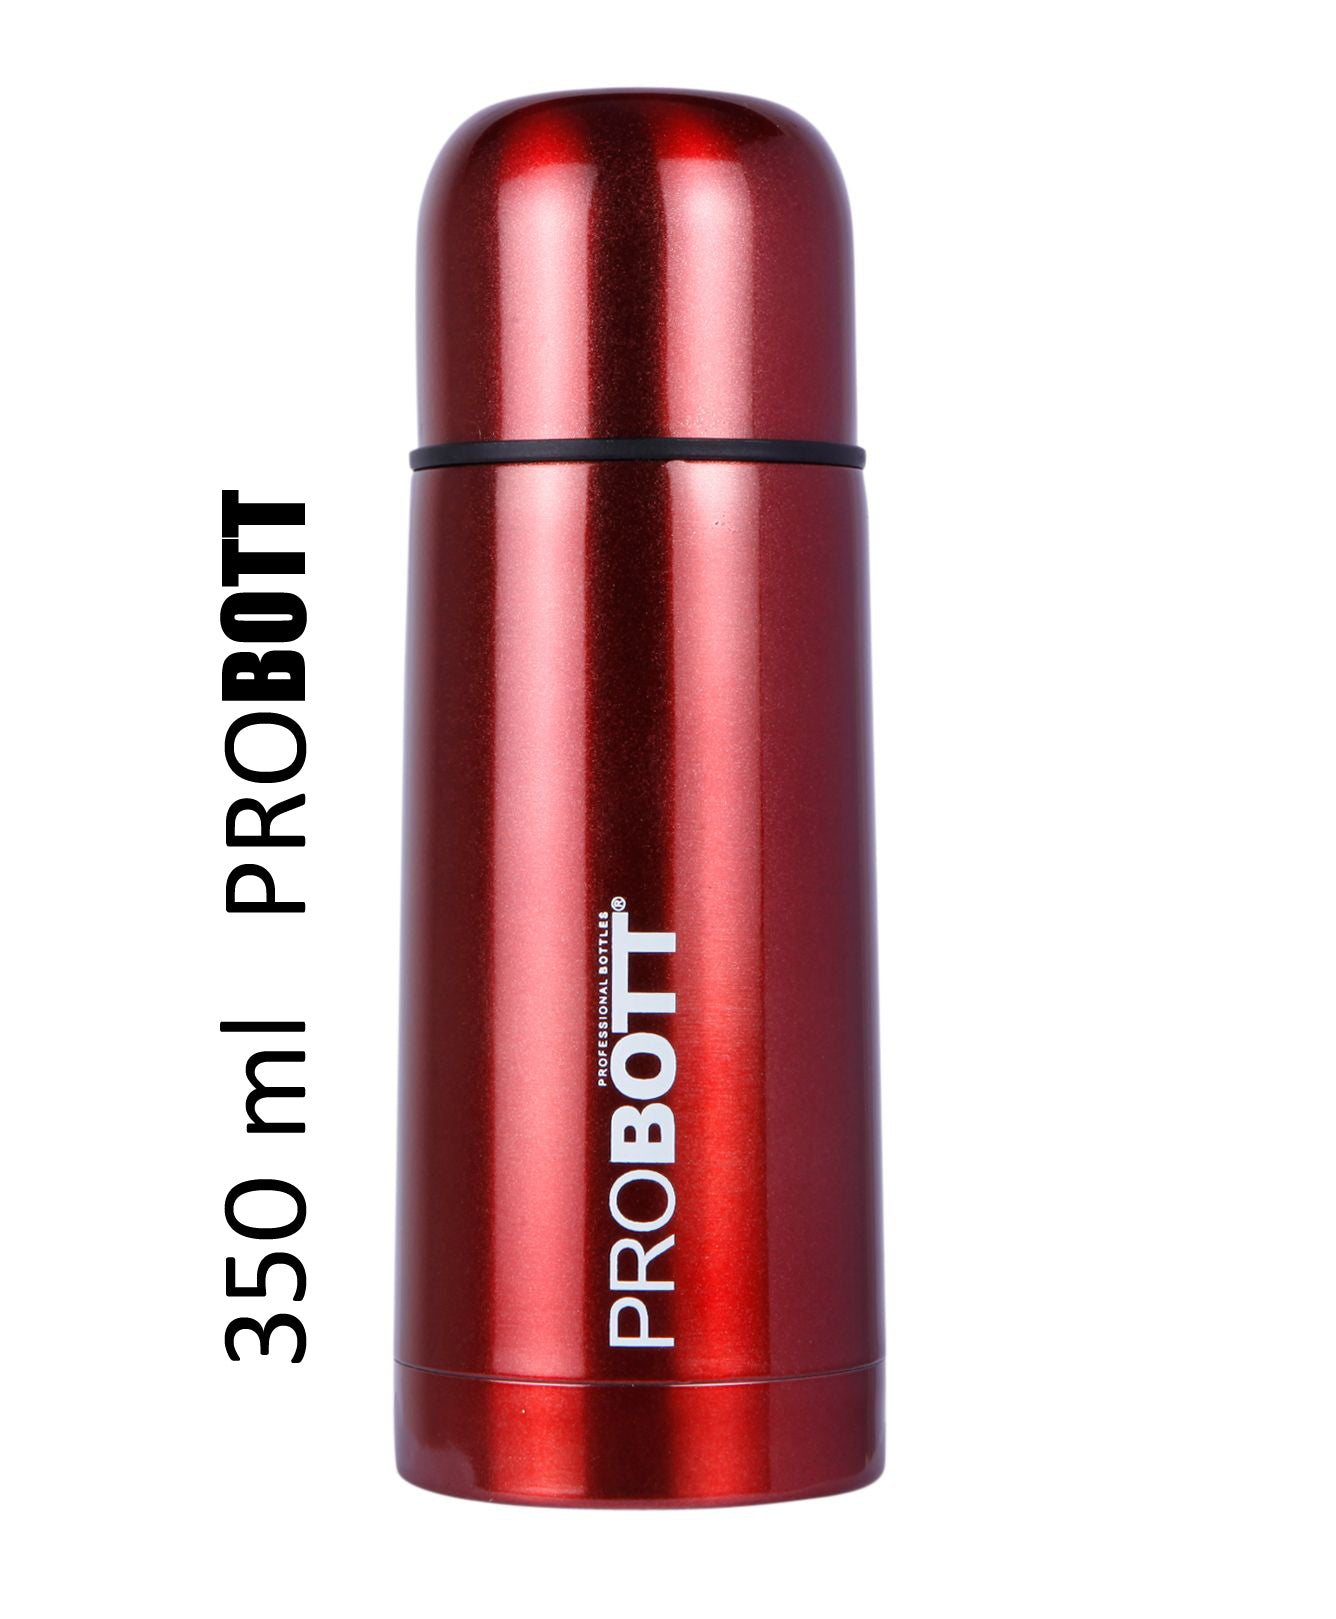 Probott SS Sports Bottle PB350-02 - Shopping With Deals